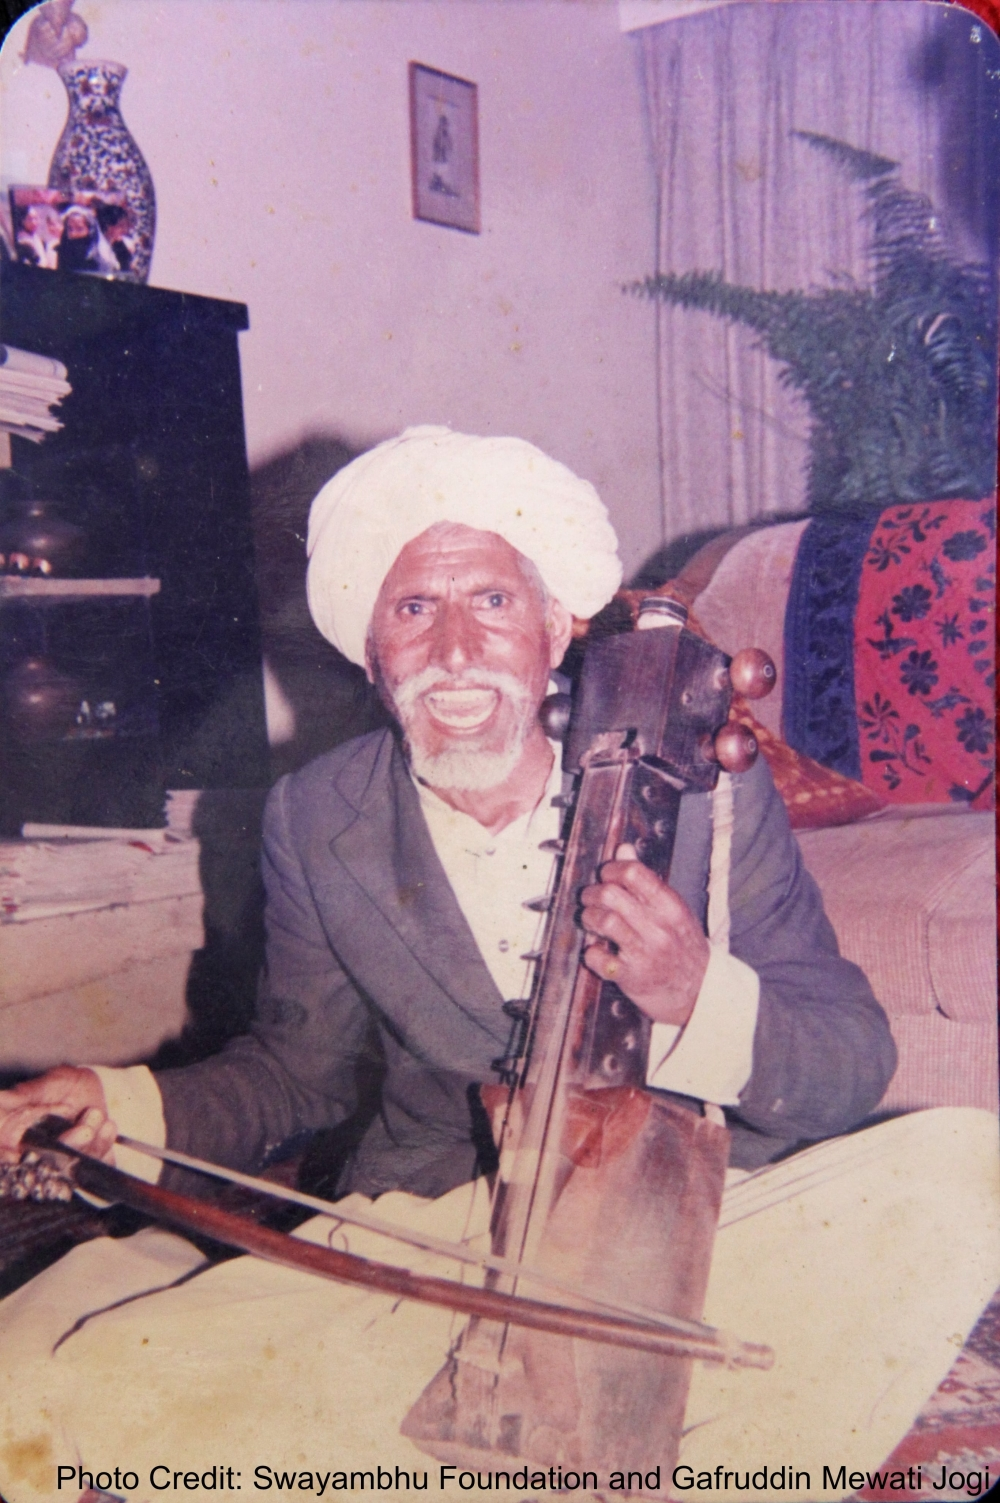 Gafruddin ji's father, Buddha Singh Jogi, playing the sarangi and performing at Sangeet Natak Akademi, New Delhi, in 1986. It was from Buddha Singh ji that Gafruddin ji learnt the 48-hour-long Pandun ka kada. Buddha Singh ji knew 28 different lok gaathas (folktales)